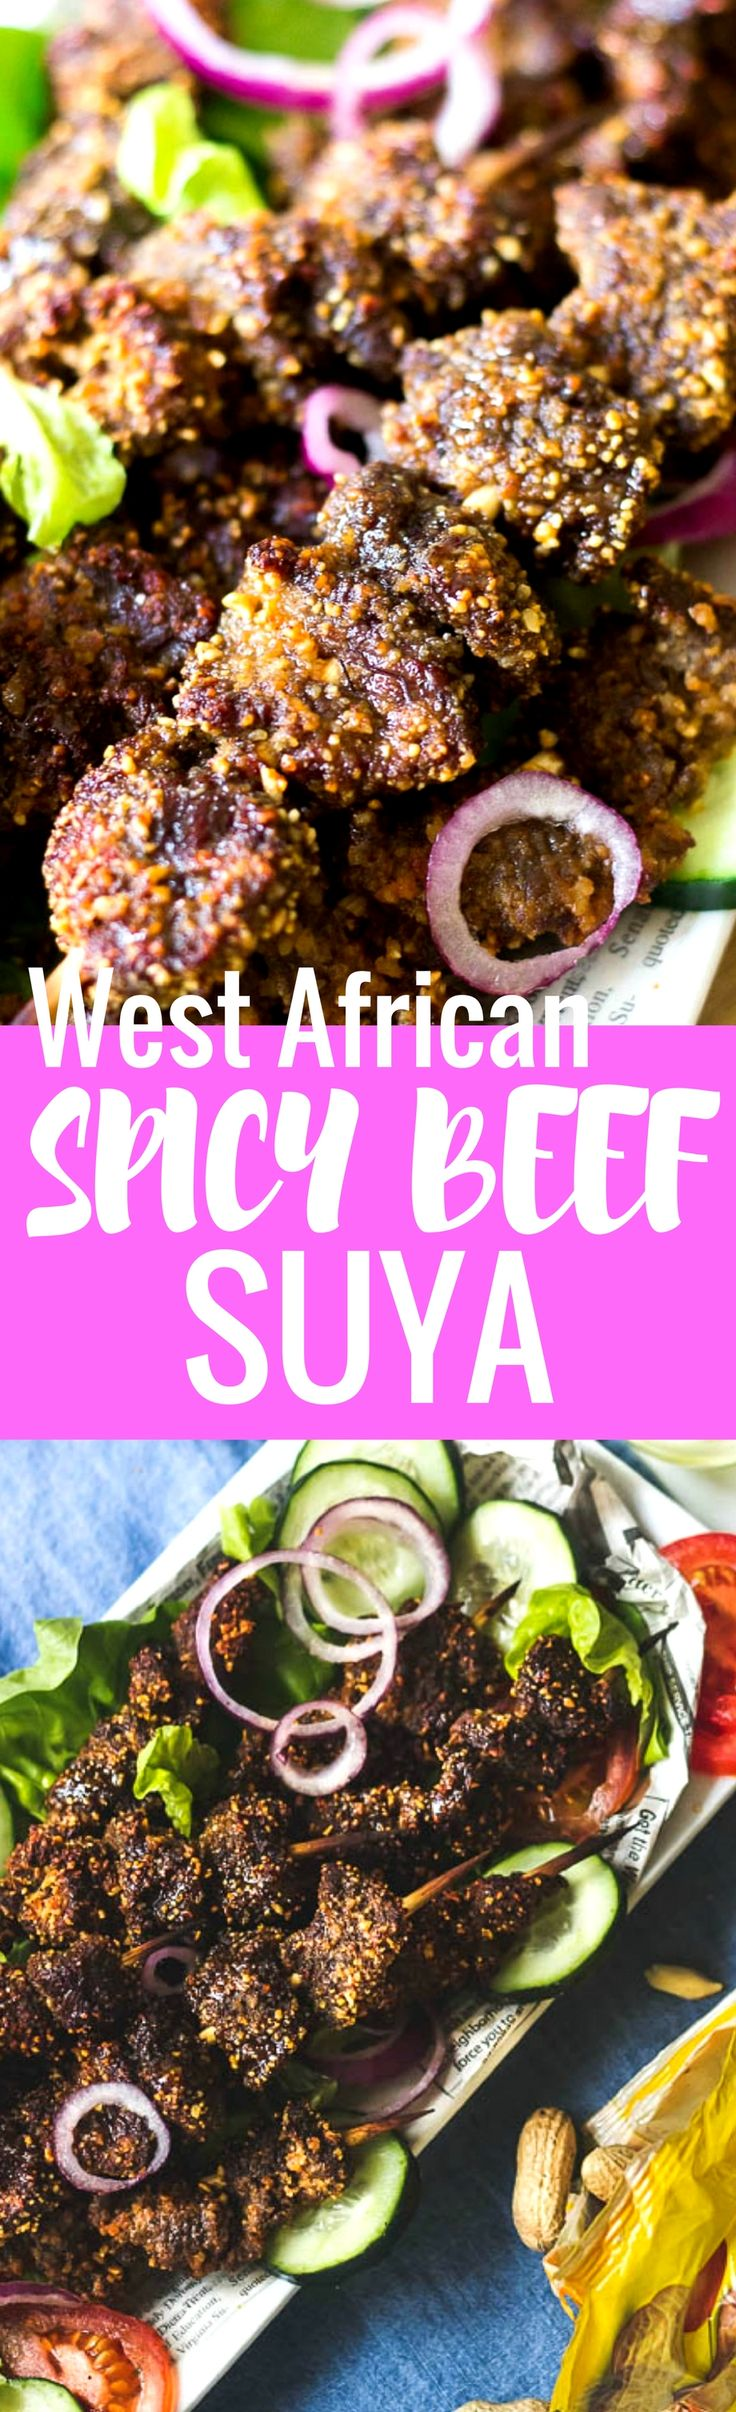 15 lovely minutes in the oven. That's all the time you need to make this mouth watering Beef Suya, A West African spicy street food kebab with a nutty, seasoning blend. #beefsuya #kebabs #kabobs